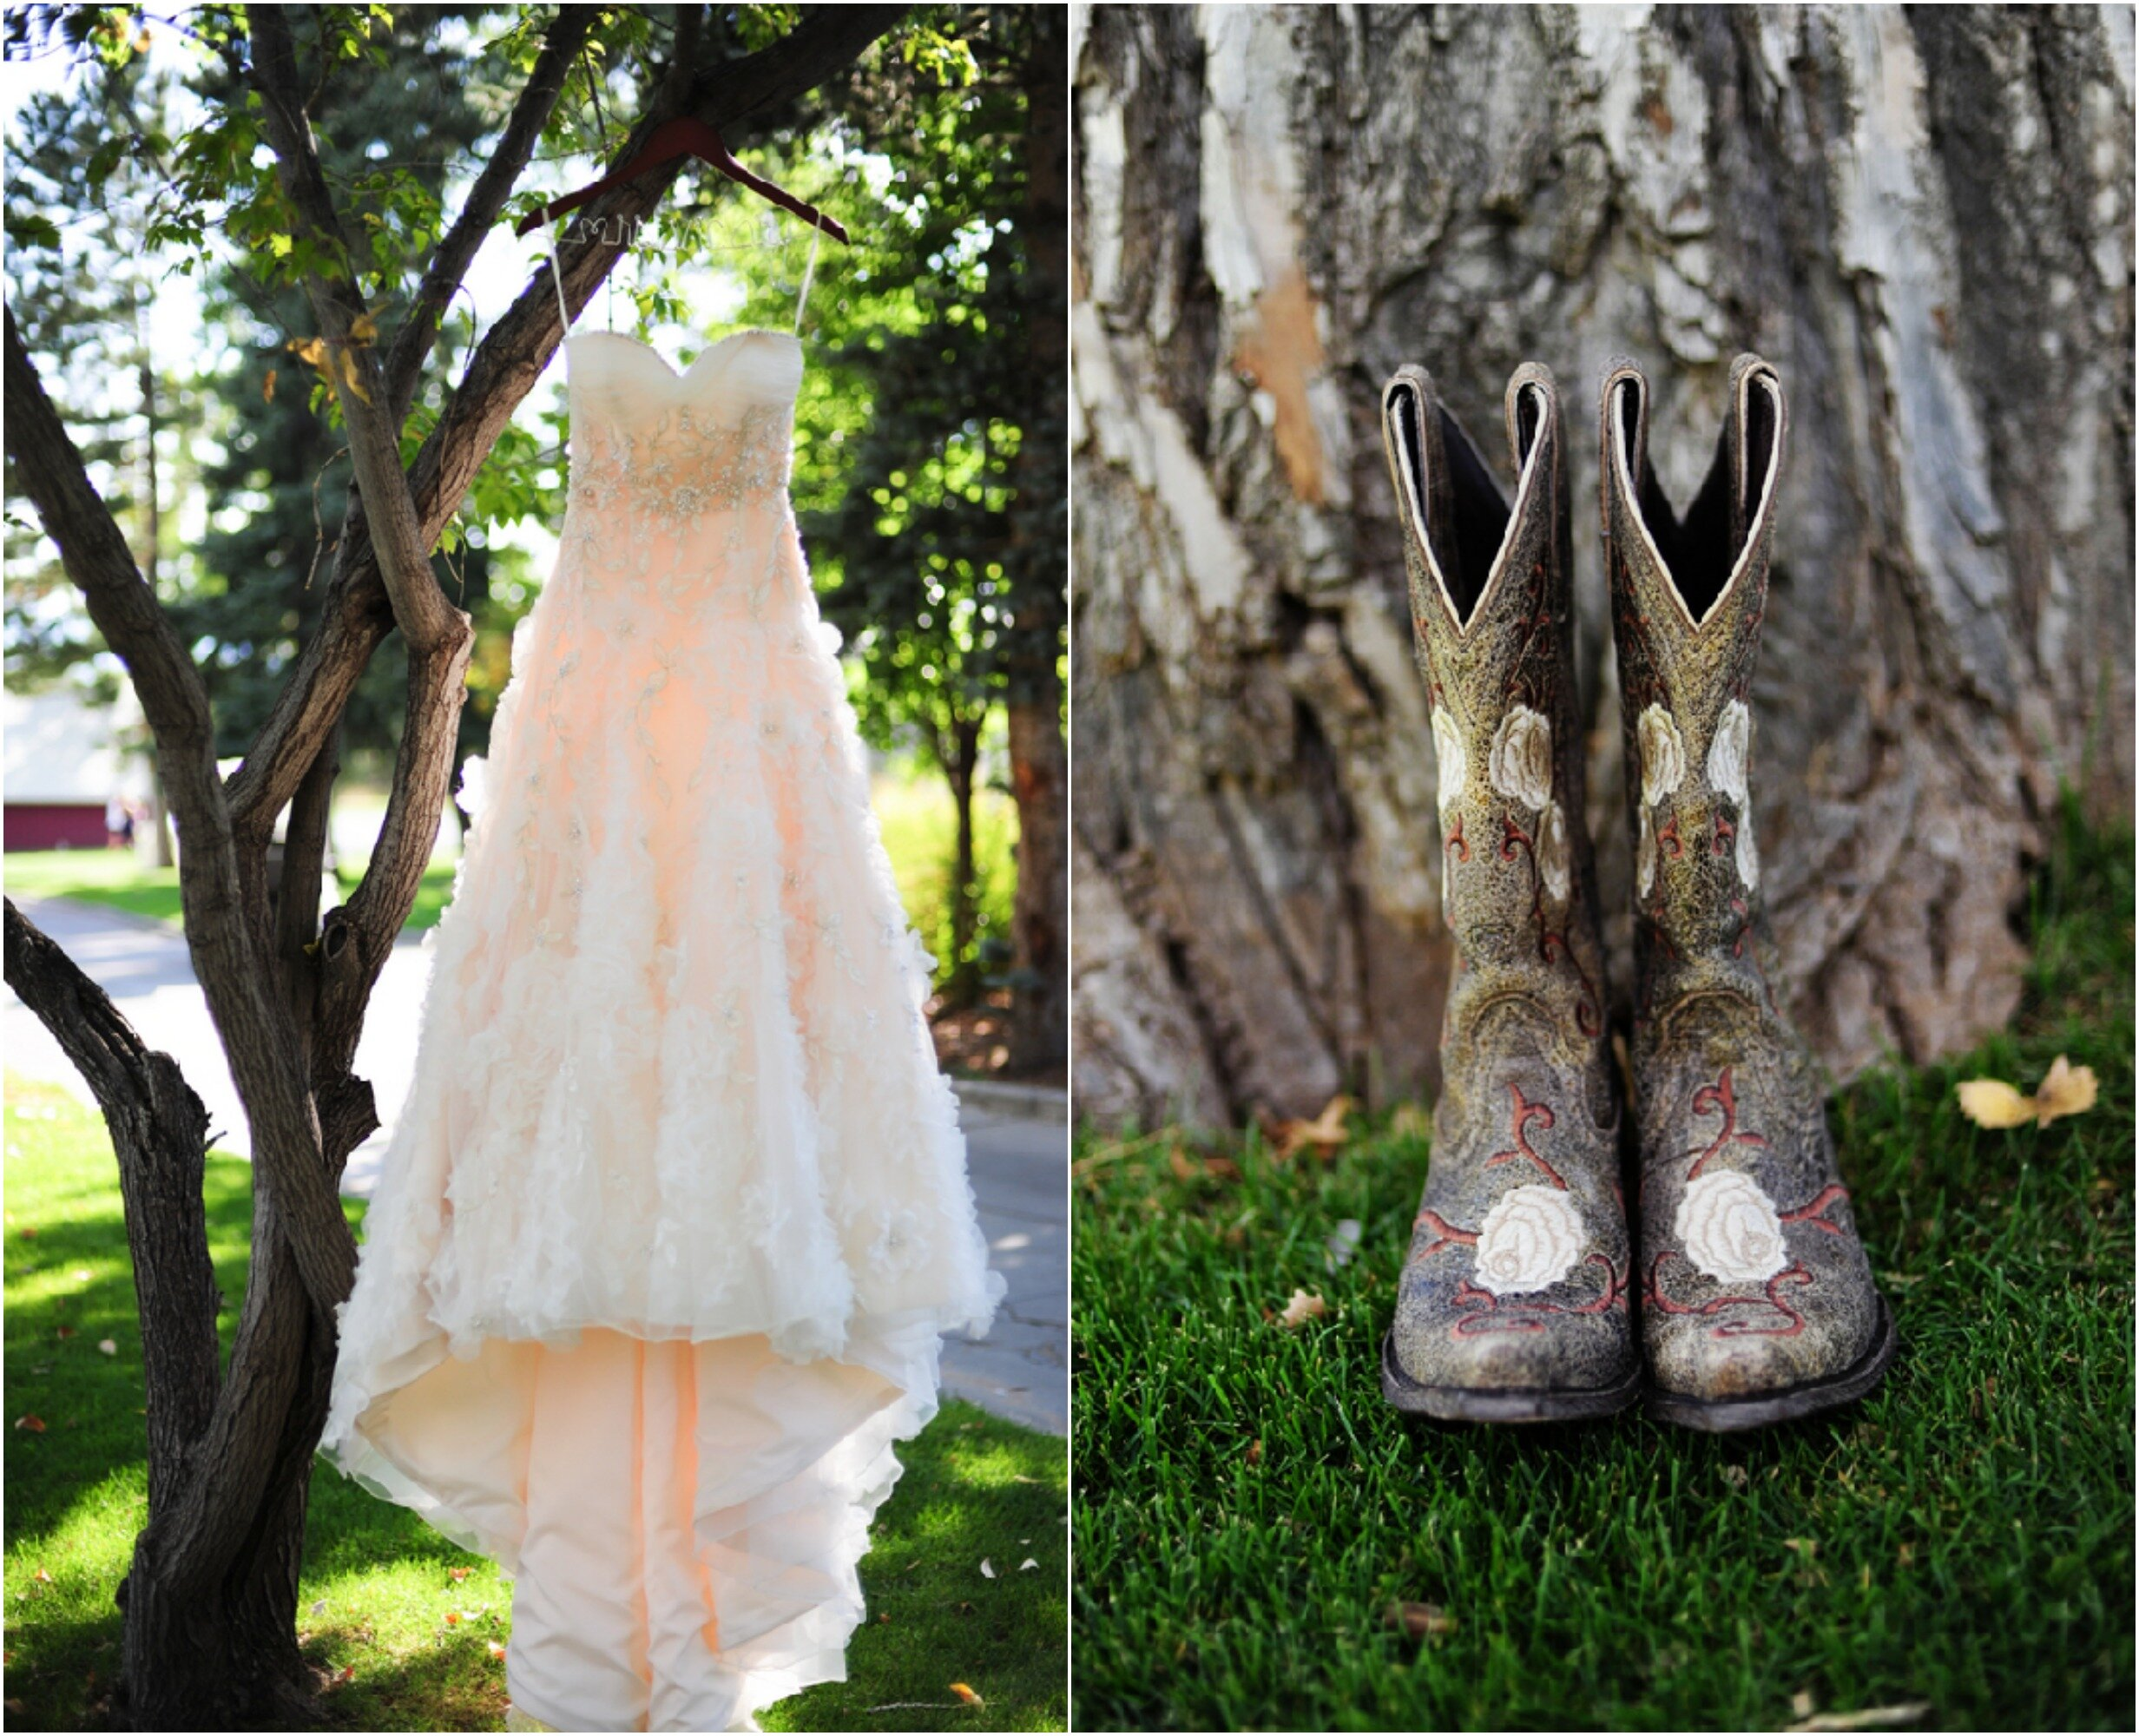 Cowboy boots wedding dresses pictures ideas guide to for Wedding dresses with cowboy boots